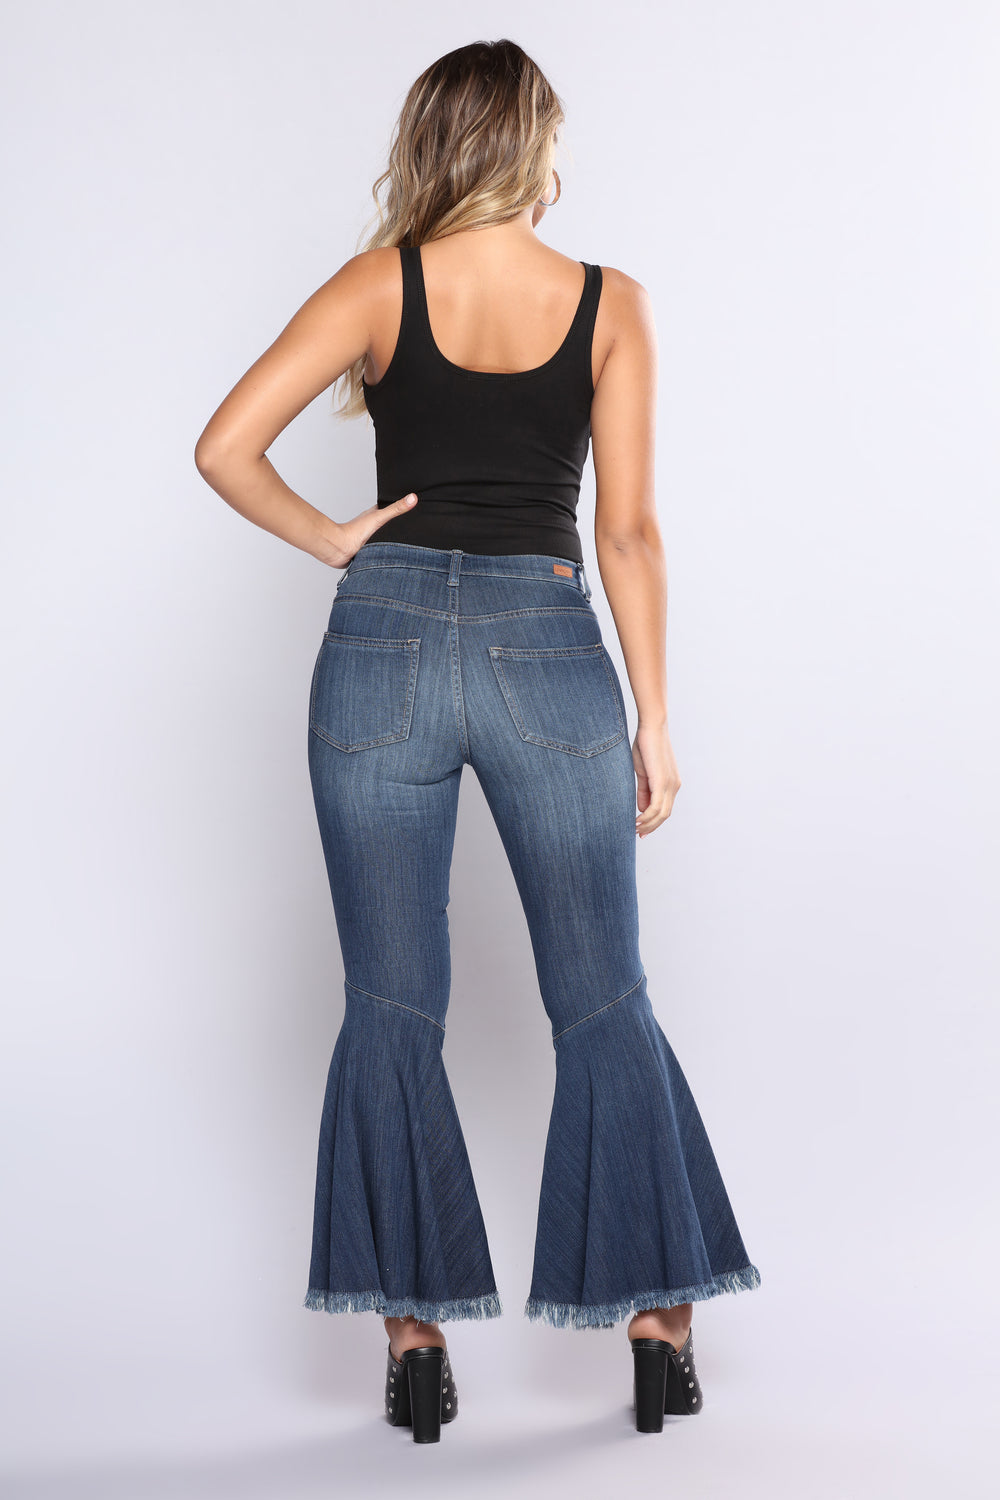 Elevated Stuntin Snap Button Jeans - Dark Denim